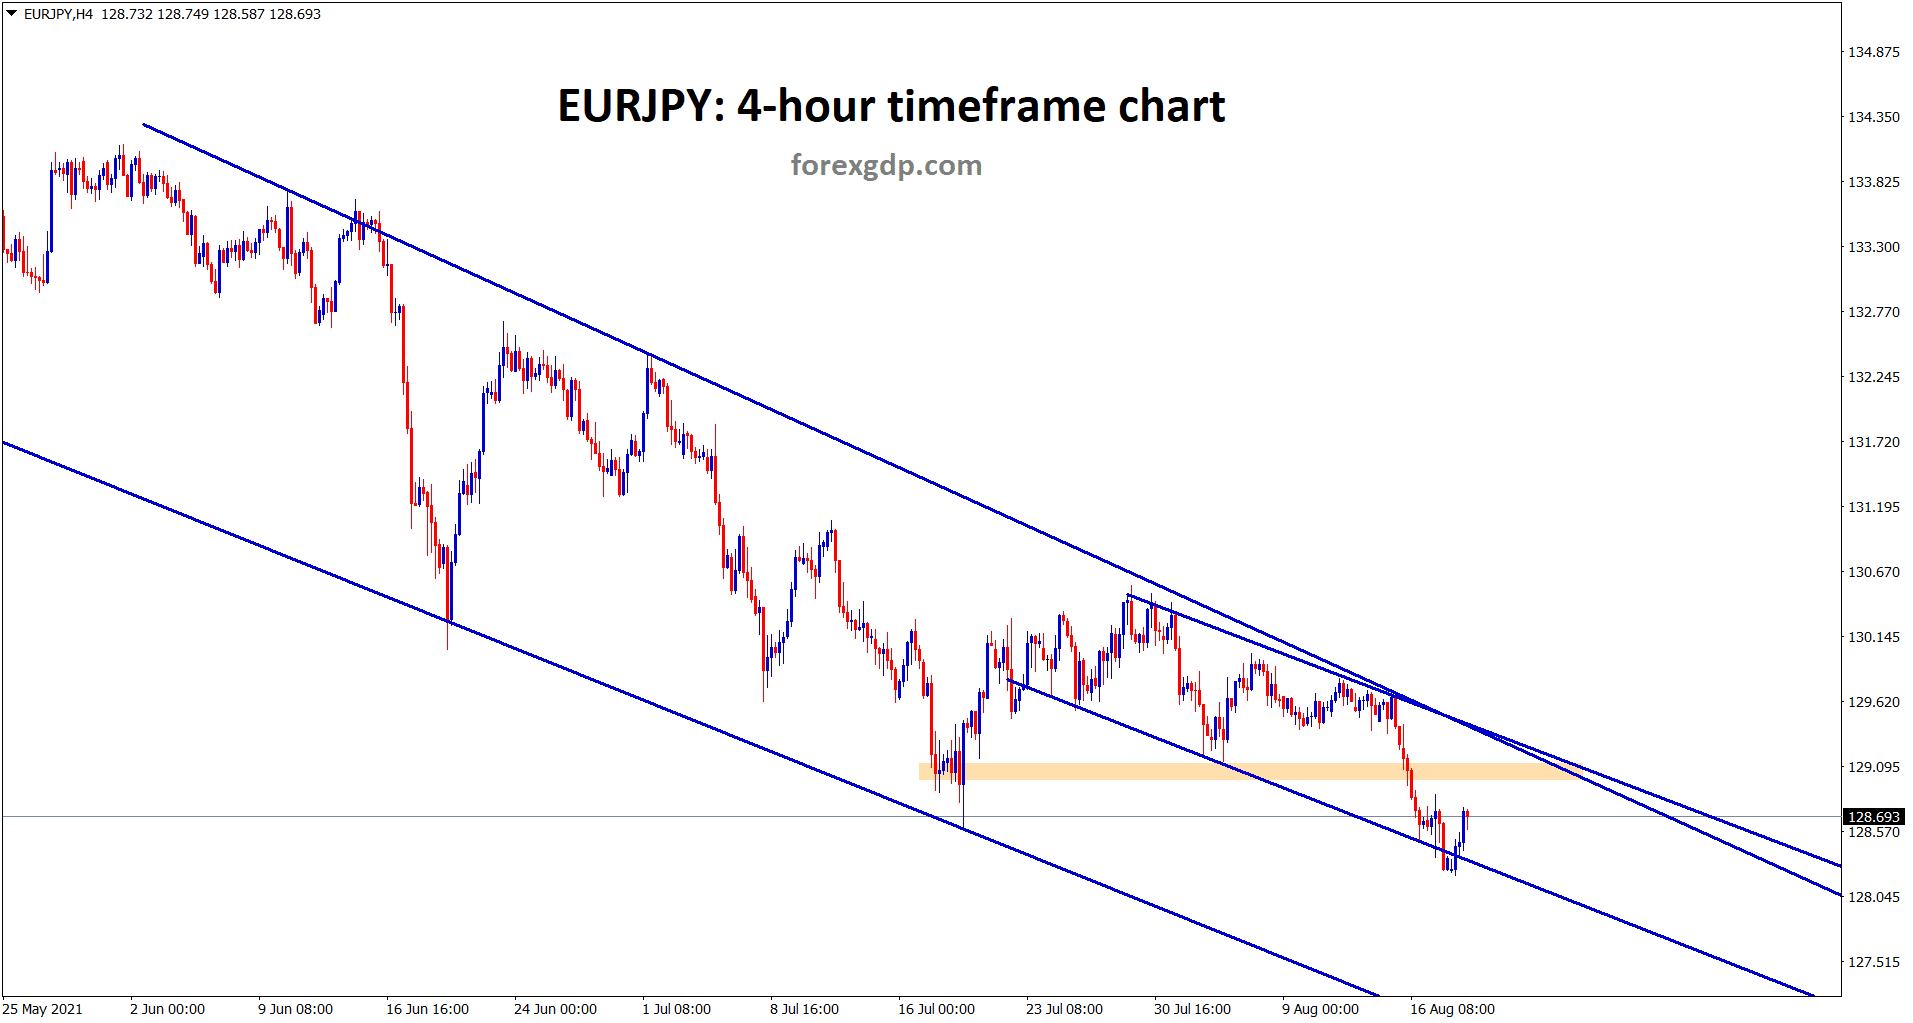 EURJPY bounces back from the minor descending channel however it has broken the recent lows.